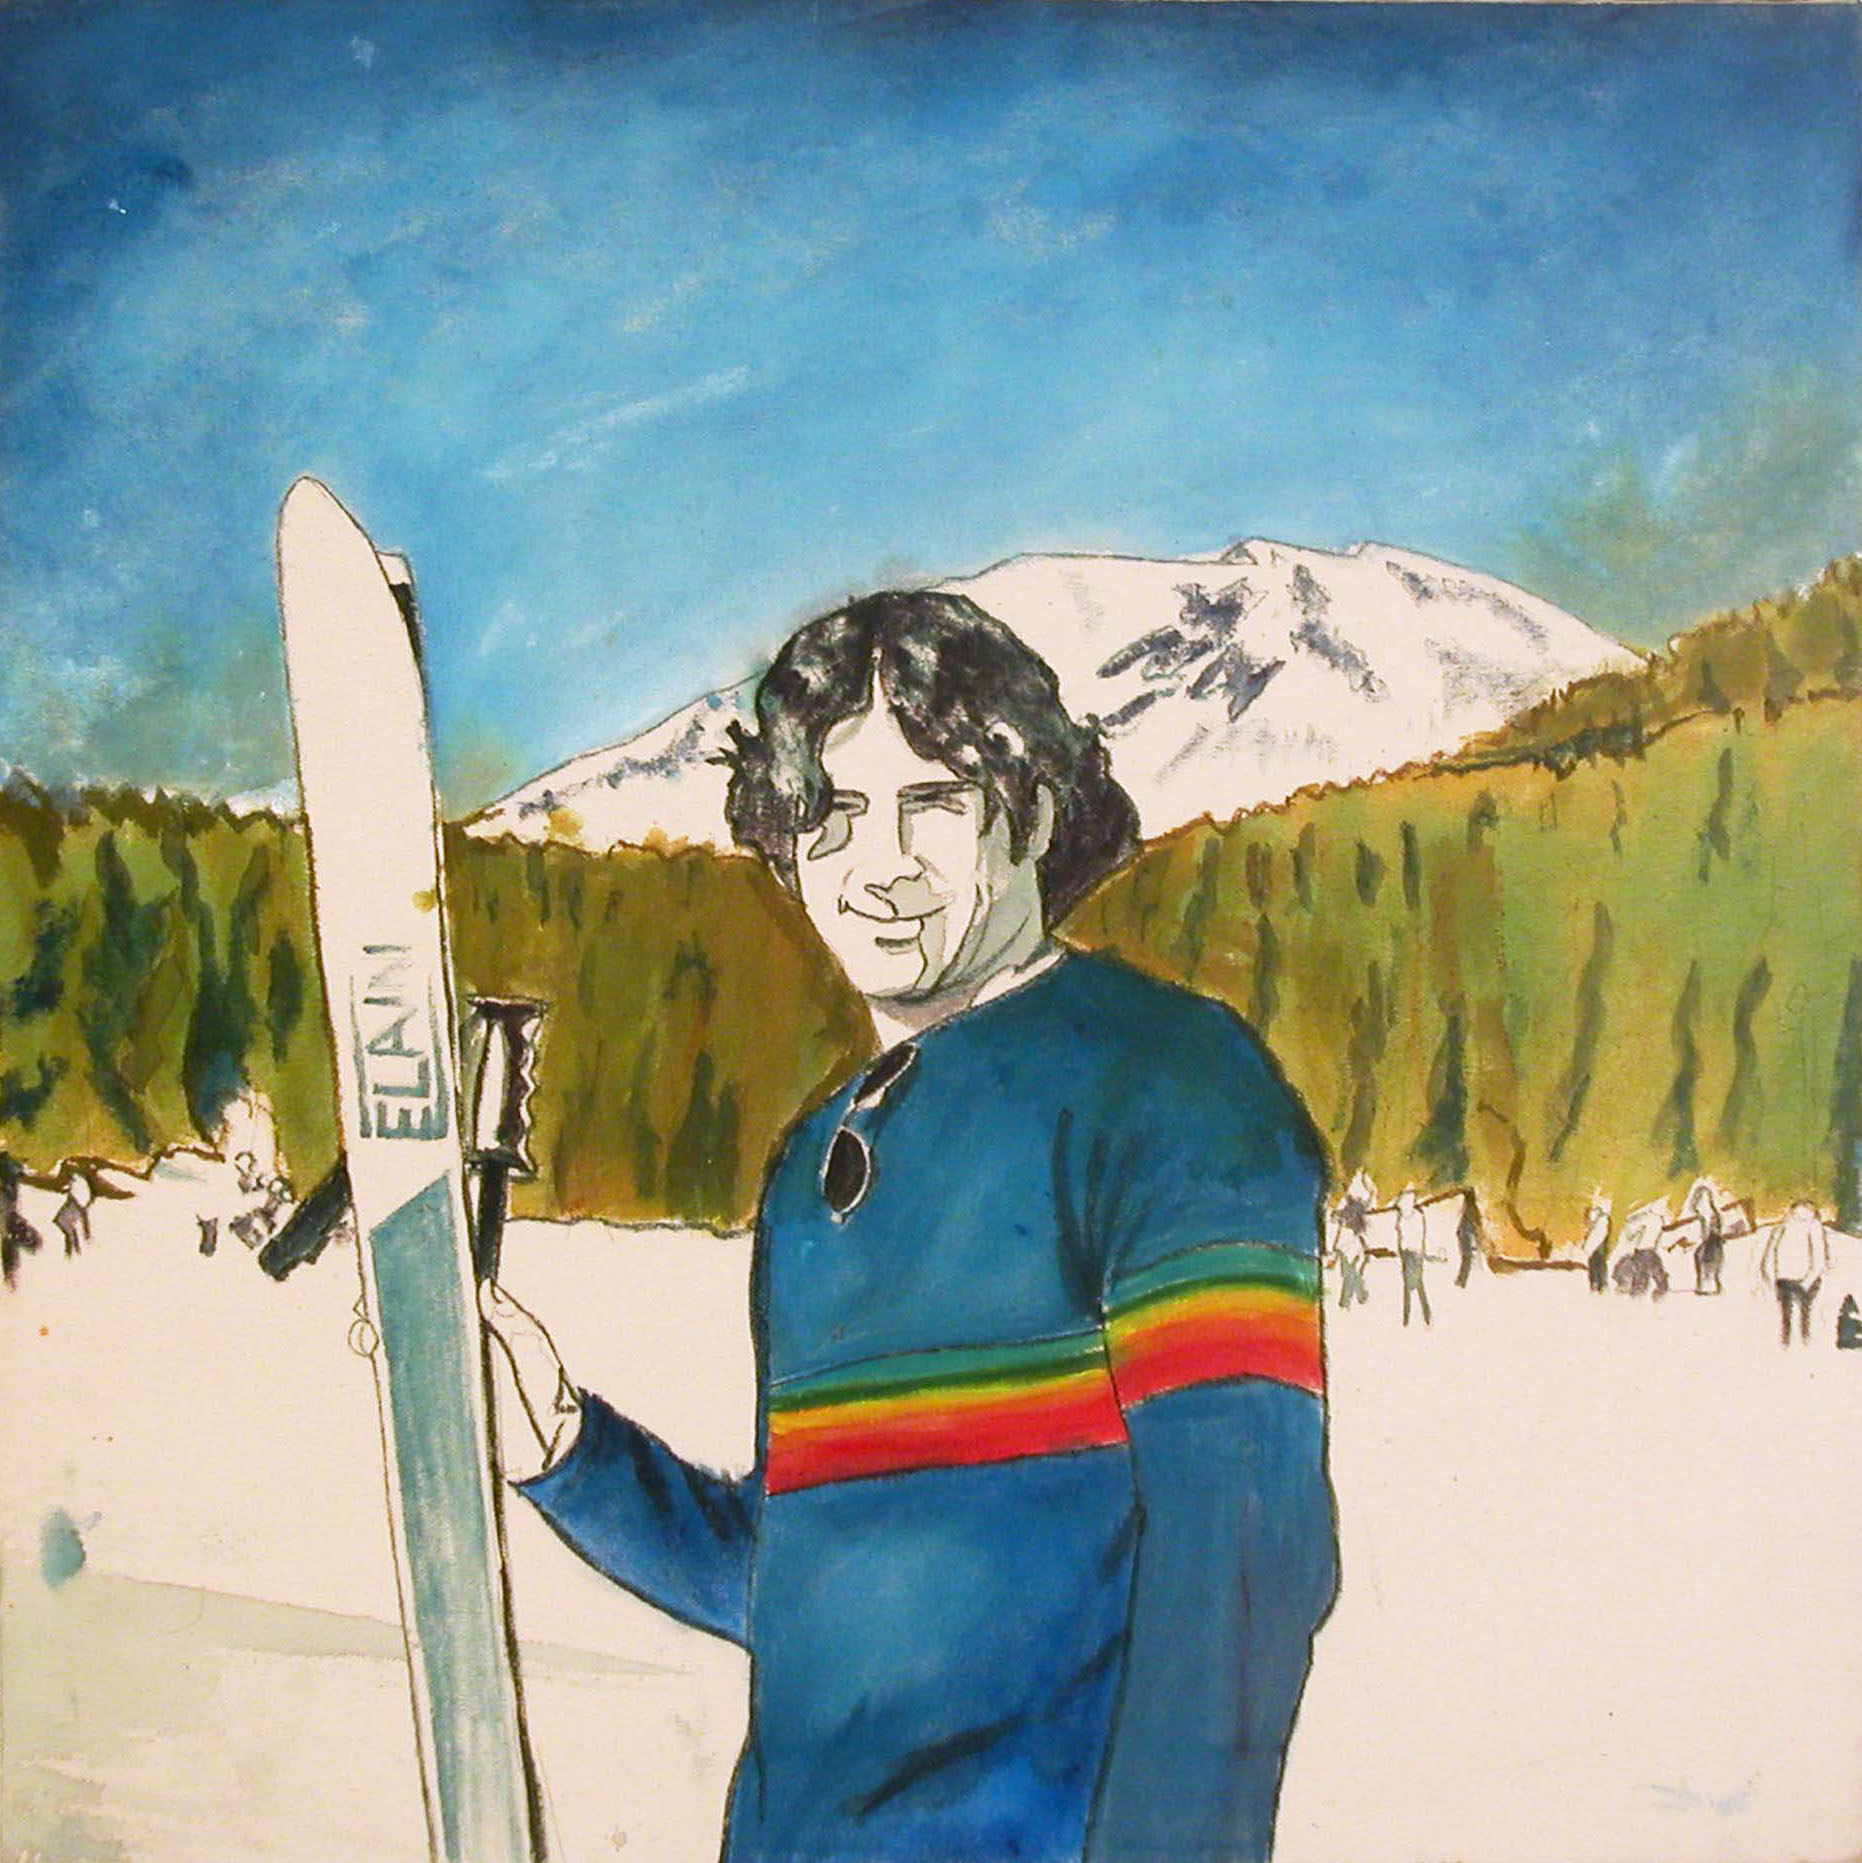 Ski Pose, 2001, acrylic on canvas, 24 x 24 in.